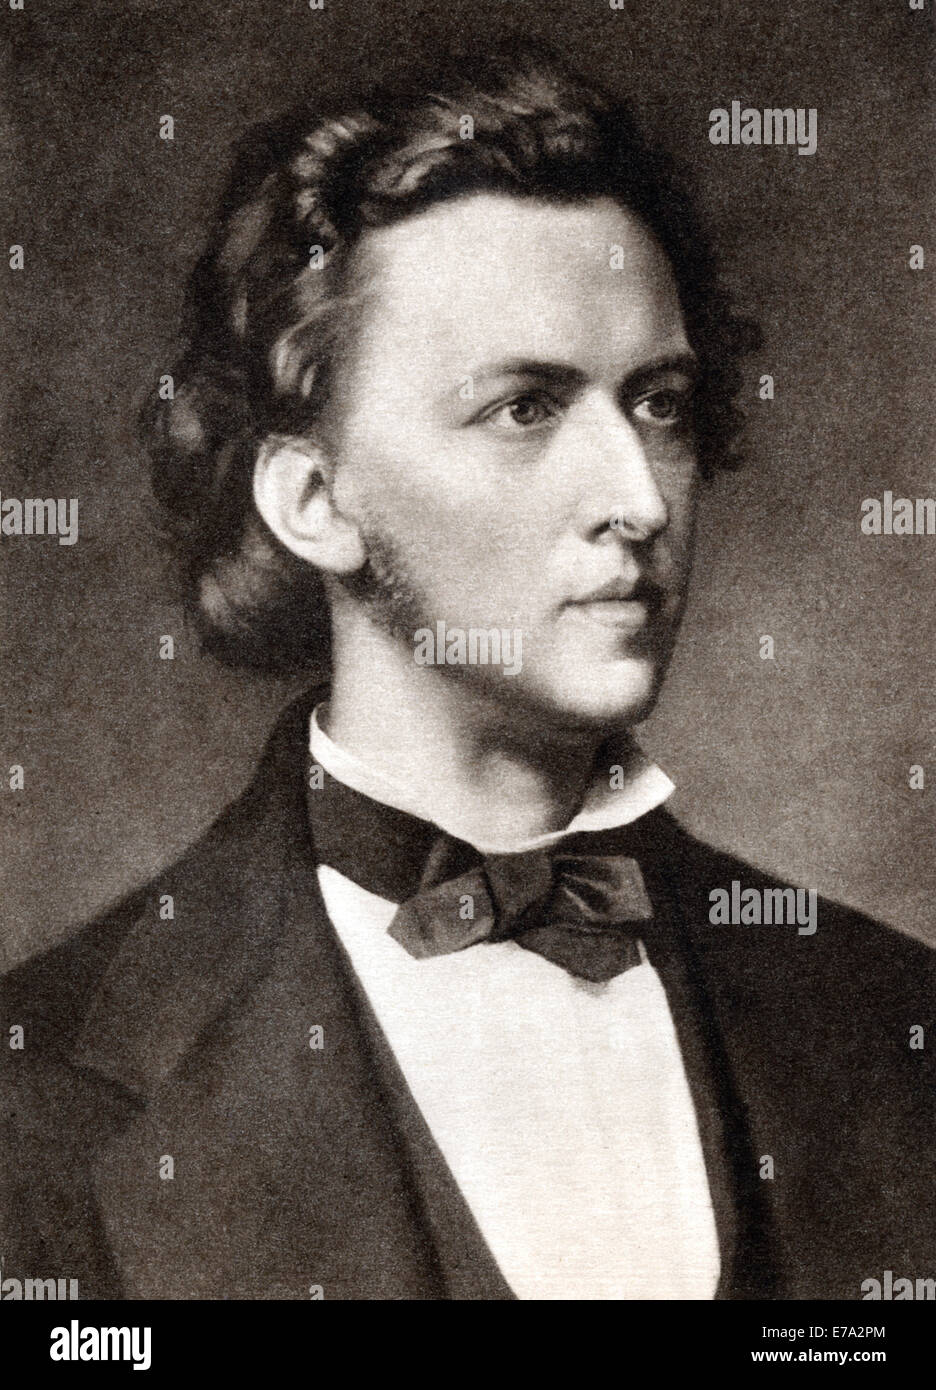 Frédéric François Chopin (1810-1849), Polish Composer, The Mentor Magazine, 1913 - Stock Image